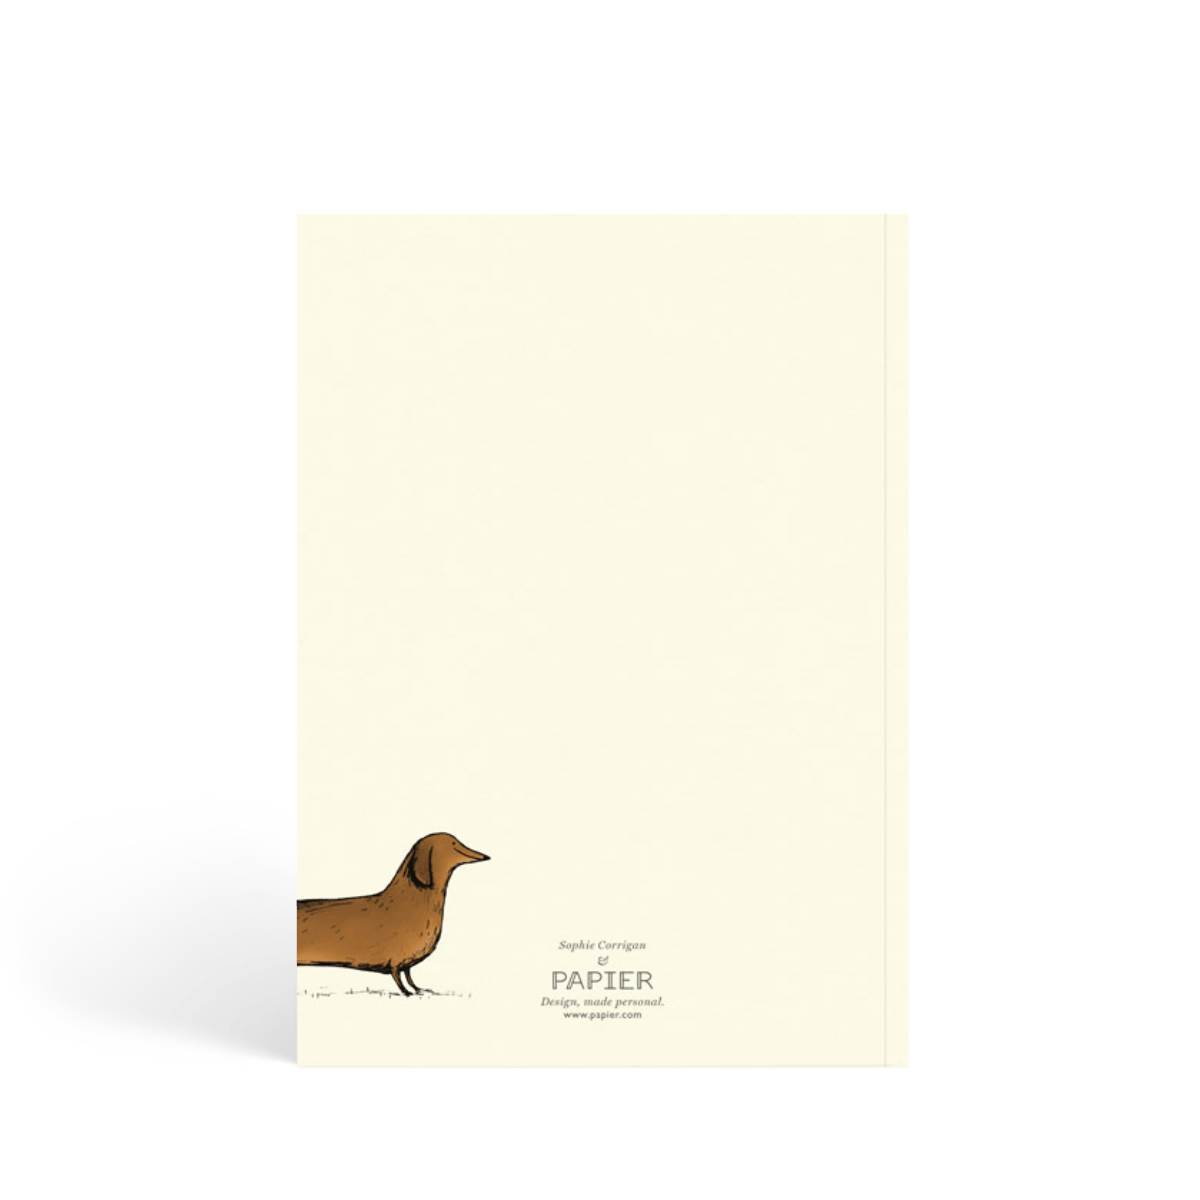 Https%3a%2f%2fwww.papier.com%2fproduct image%2f42047%2f5%2fanatomy of a dachshund 10724 back 1532362587.png?ixlib=rb 1.1